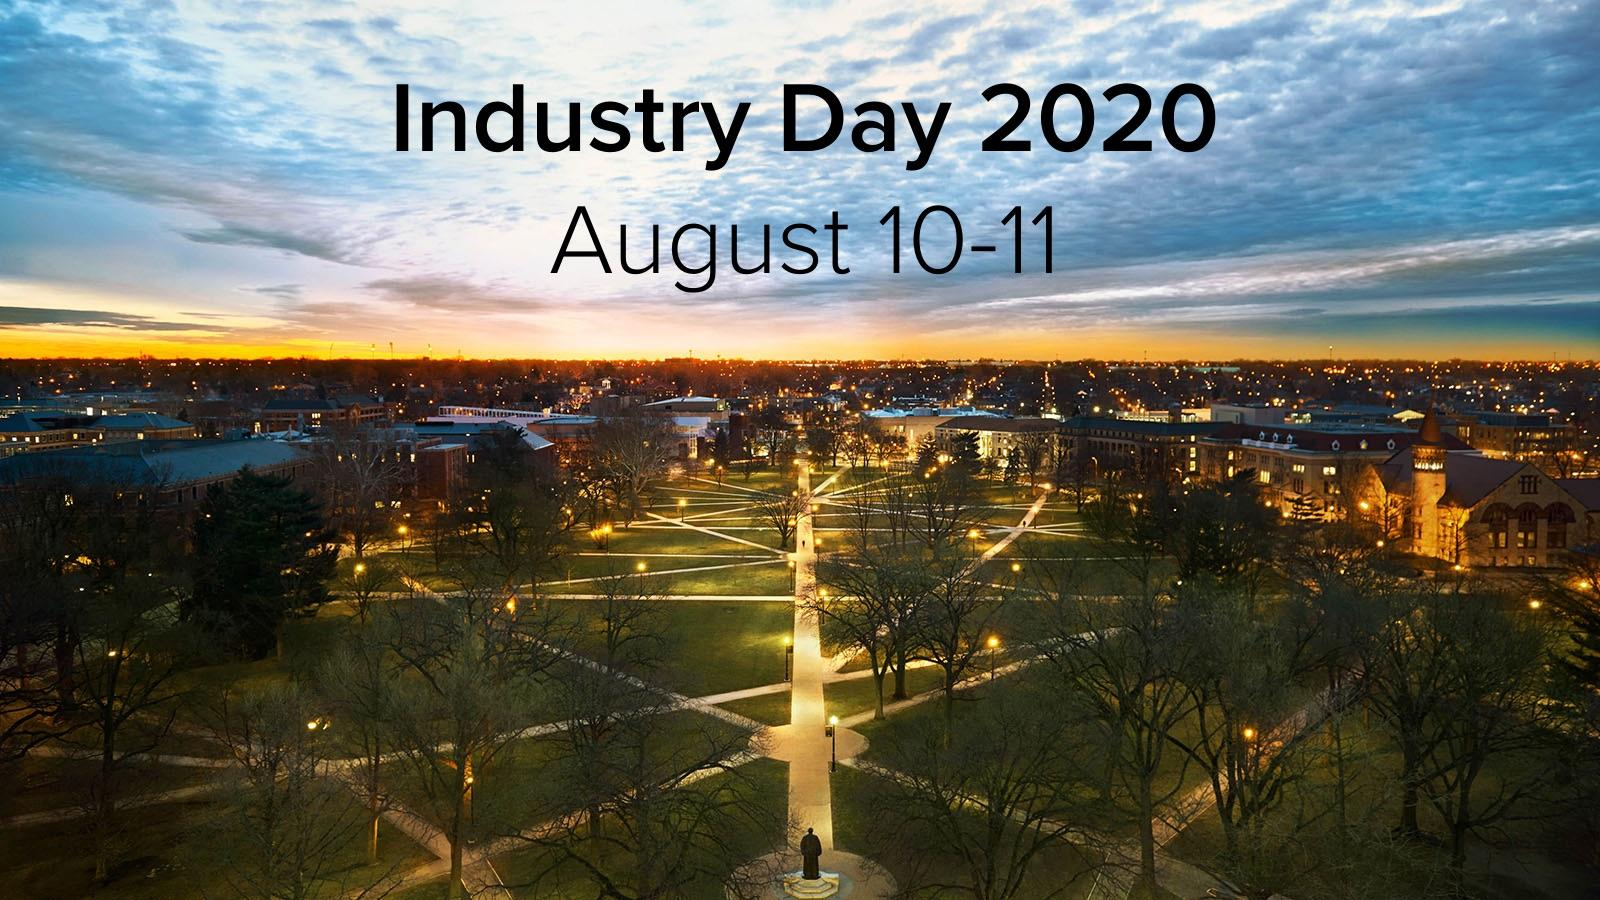 Industry Day 2020 August 10-11